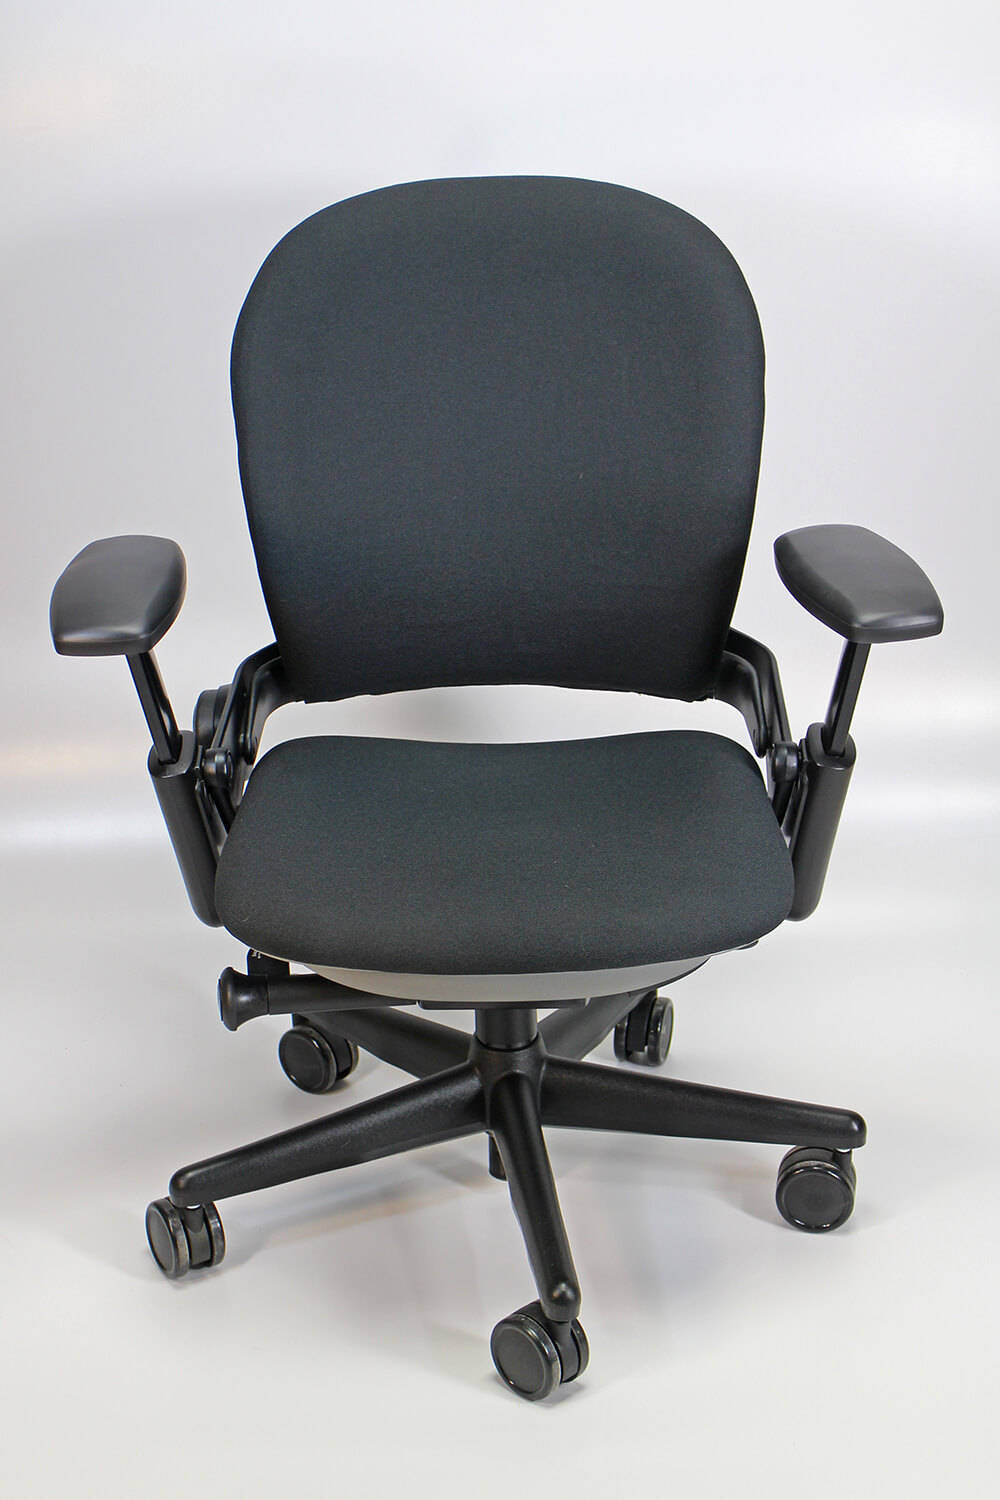 Remanufactured Steelcase Leap Chair Version 47